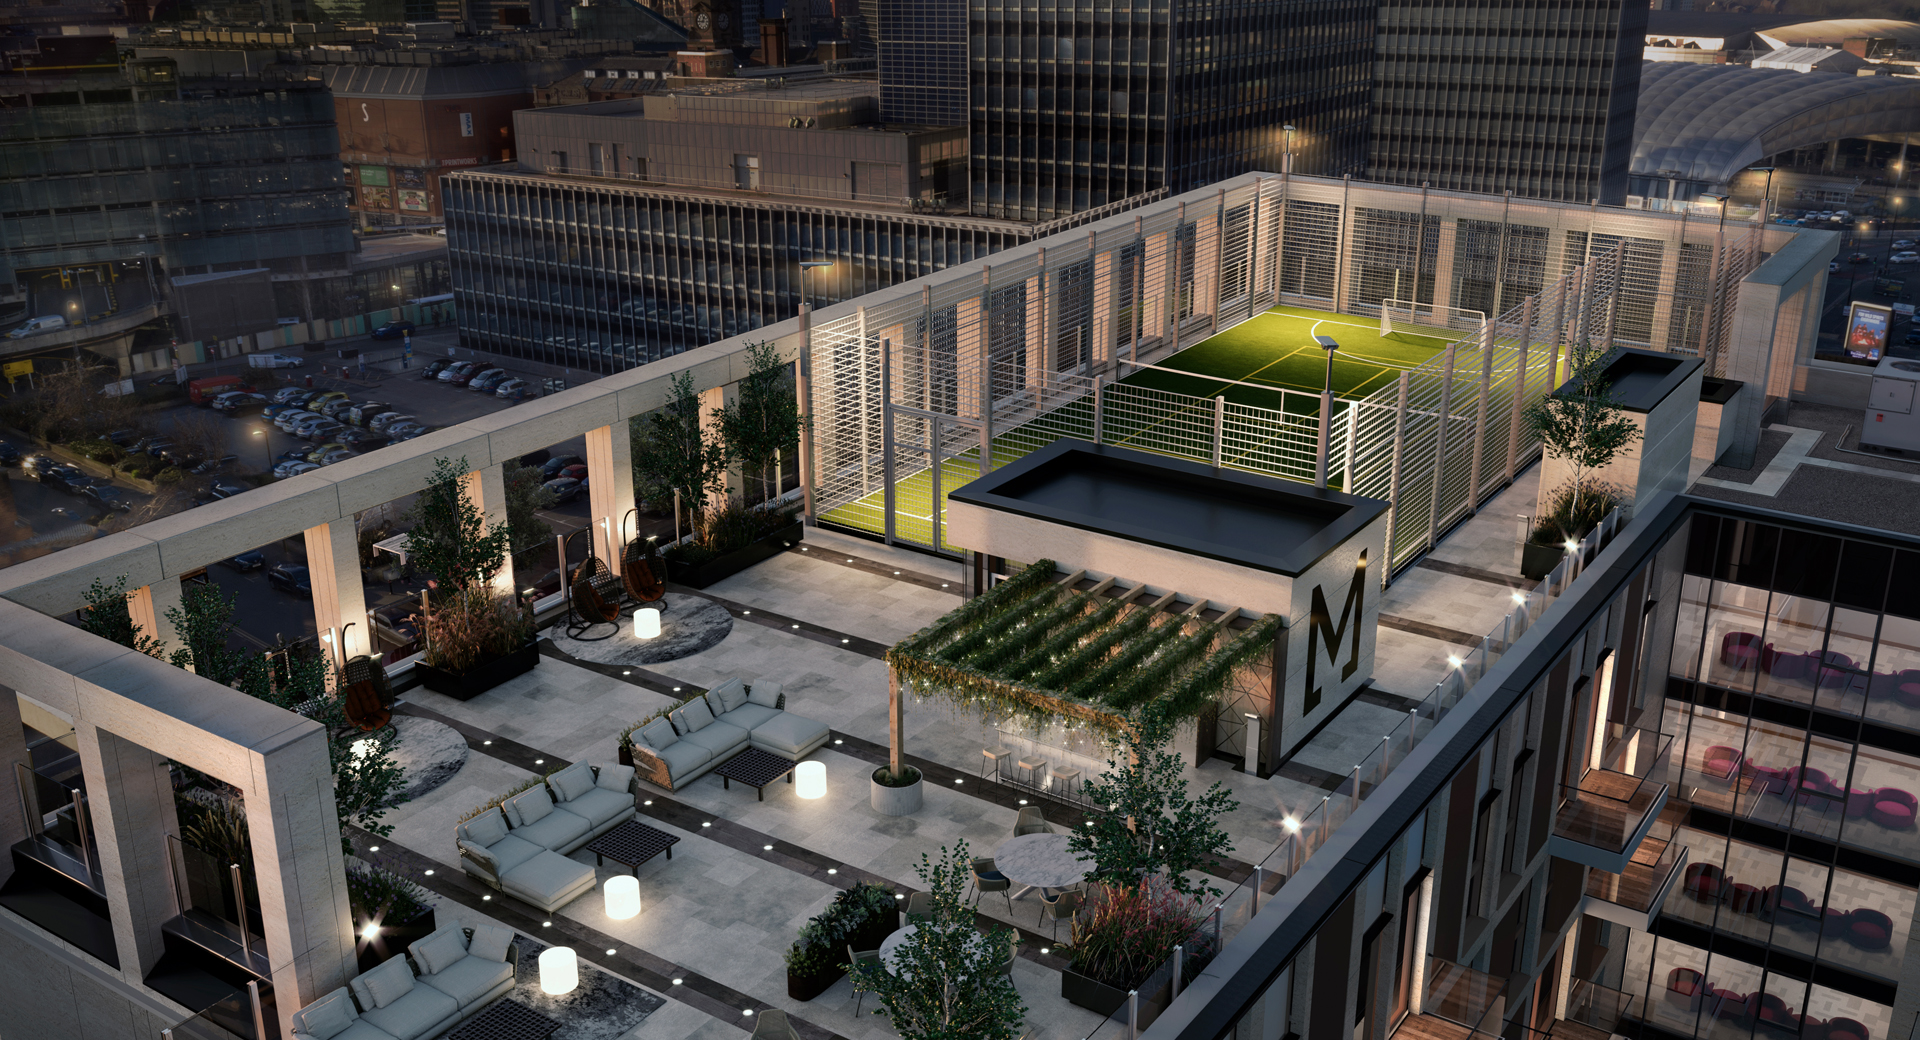 concrete rooftop terrace with small football pitch and bar area